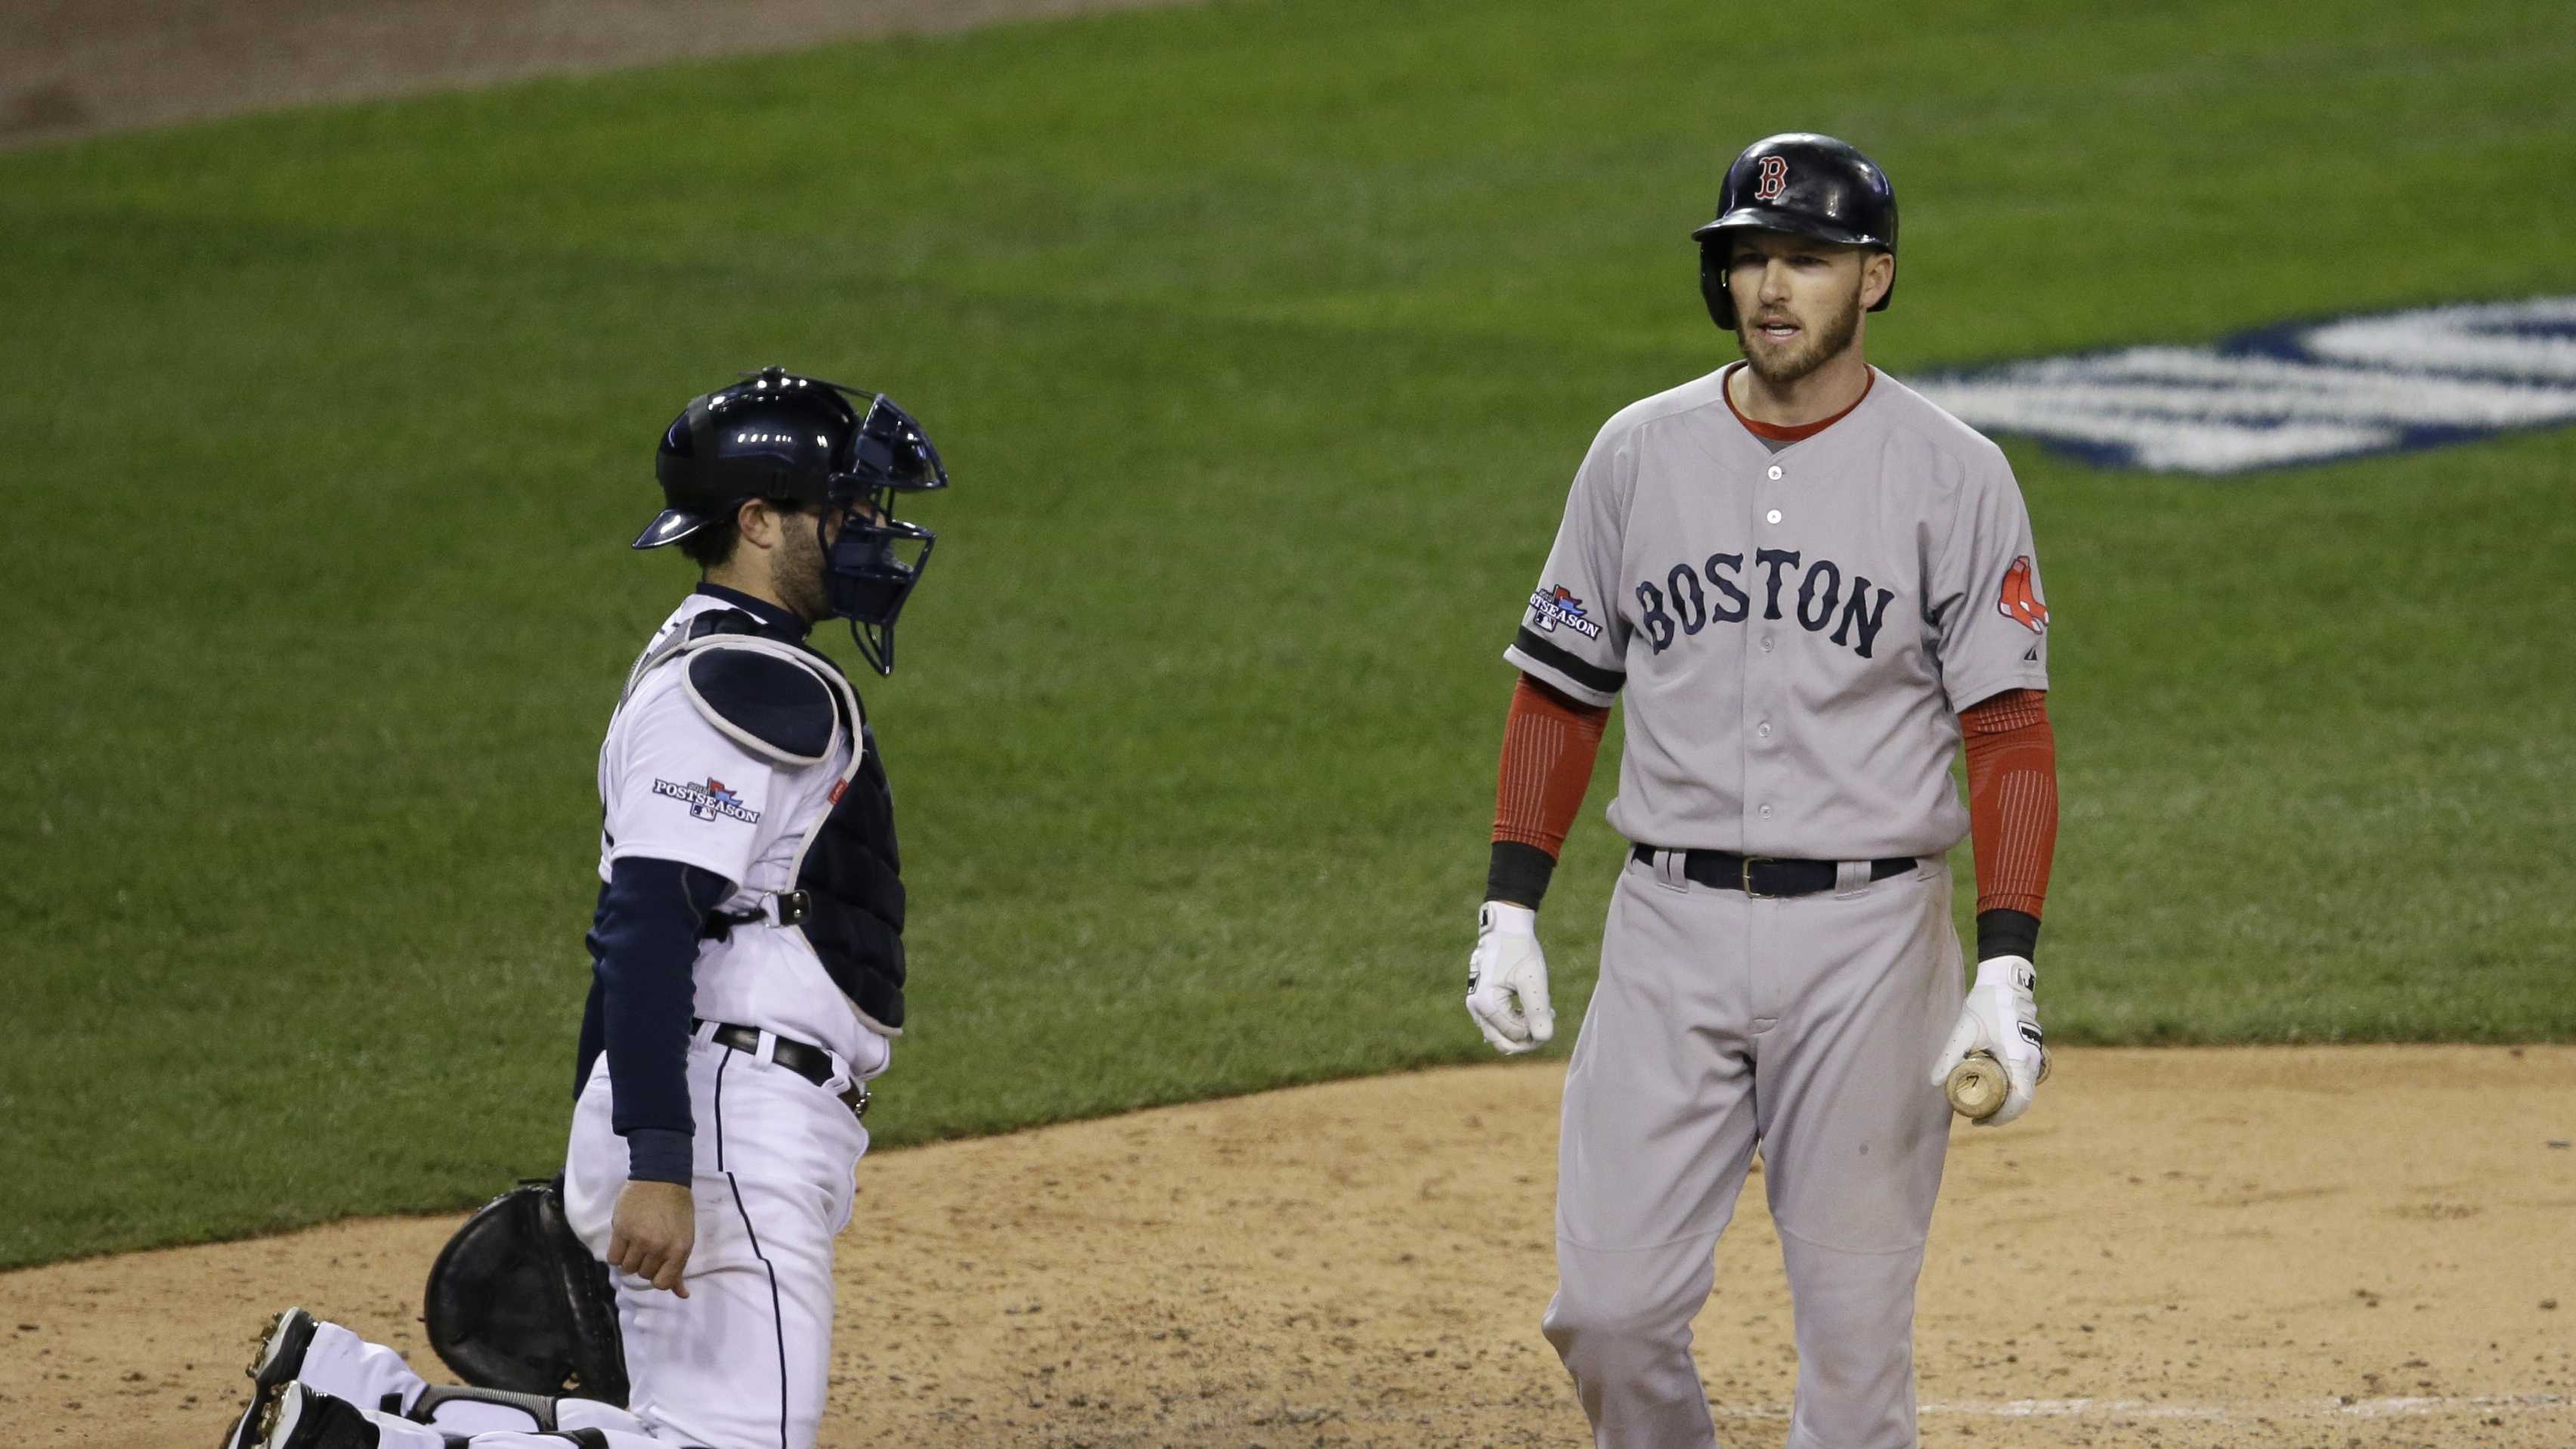 Boston Red Sox's Stephen Drew walks off after striking out in the sixth inning during Game 4 of the American League baseball championship series against the Detroit Tigers, Wednesday, Oct. 16, 2013, in Detroit.